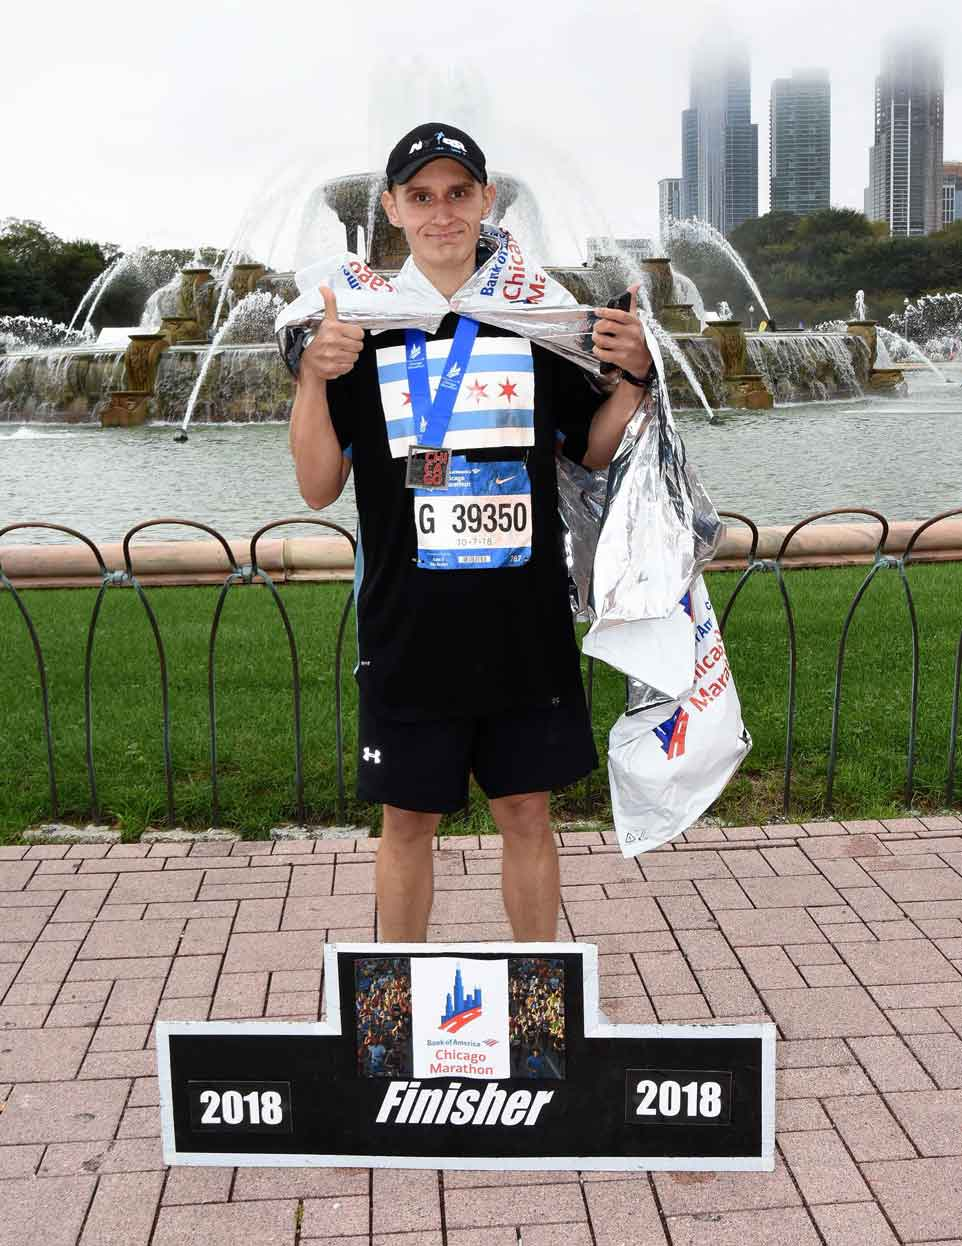 Finishing the Chicago Marathon - FFC Oak Park Member John